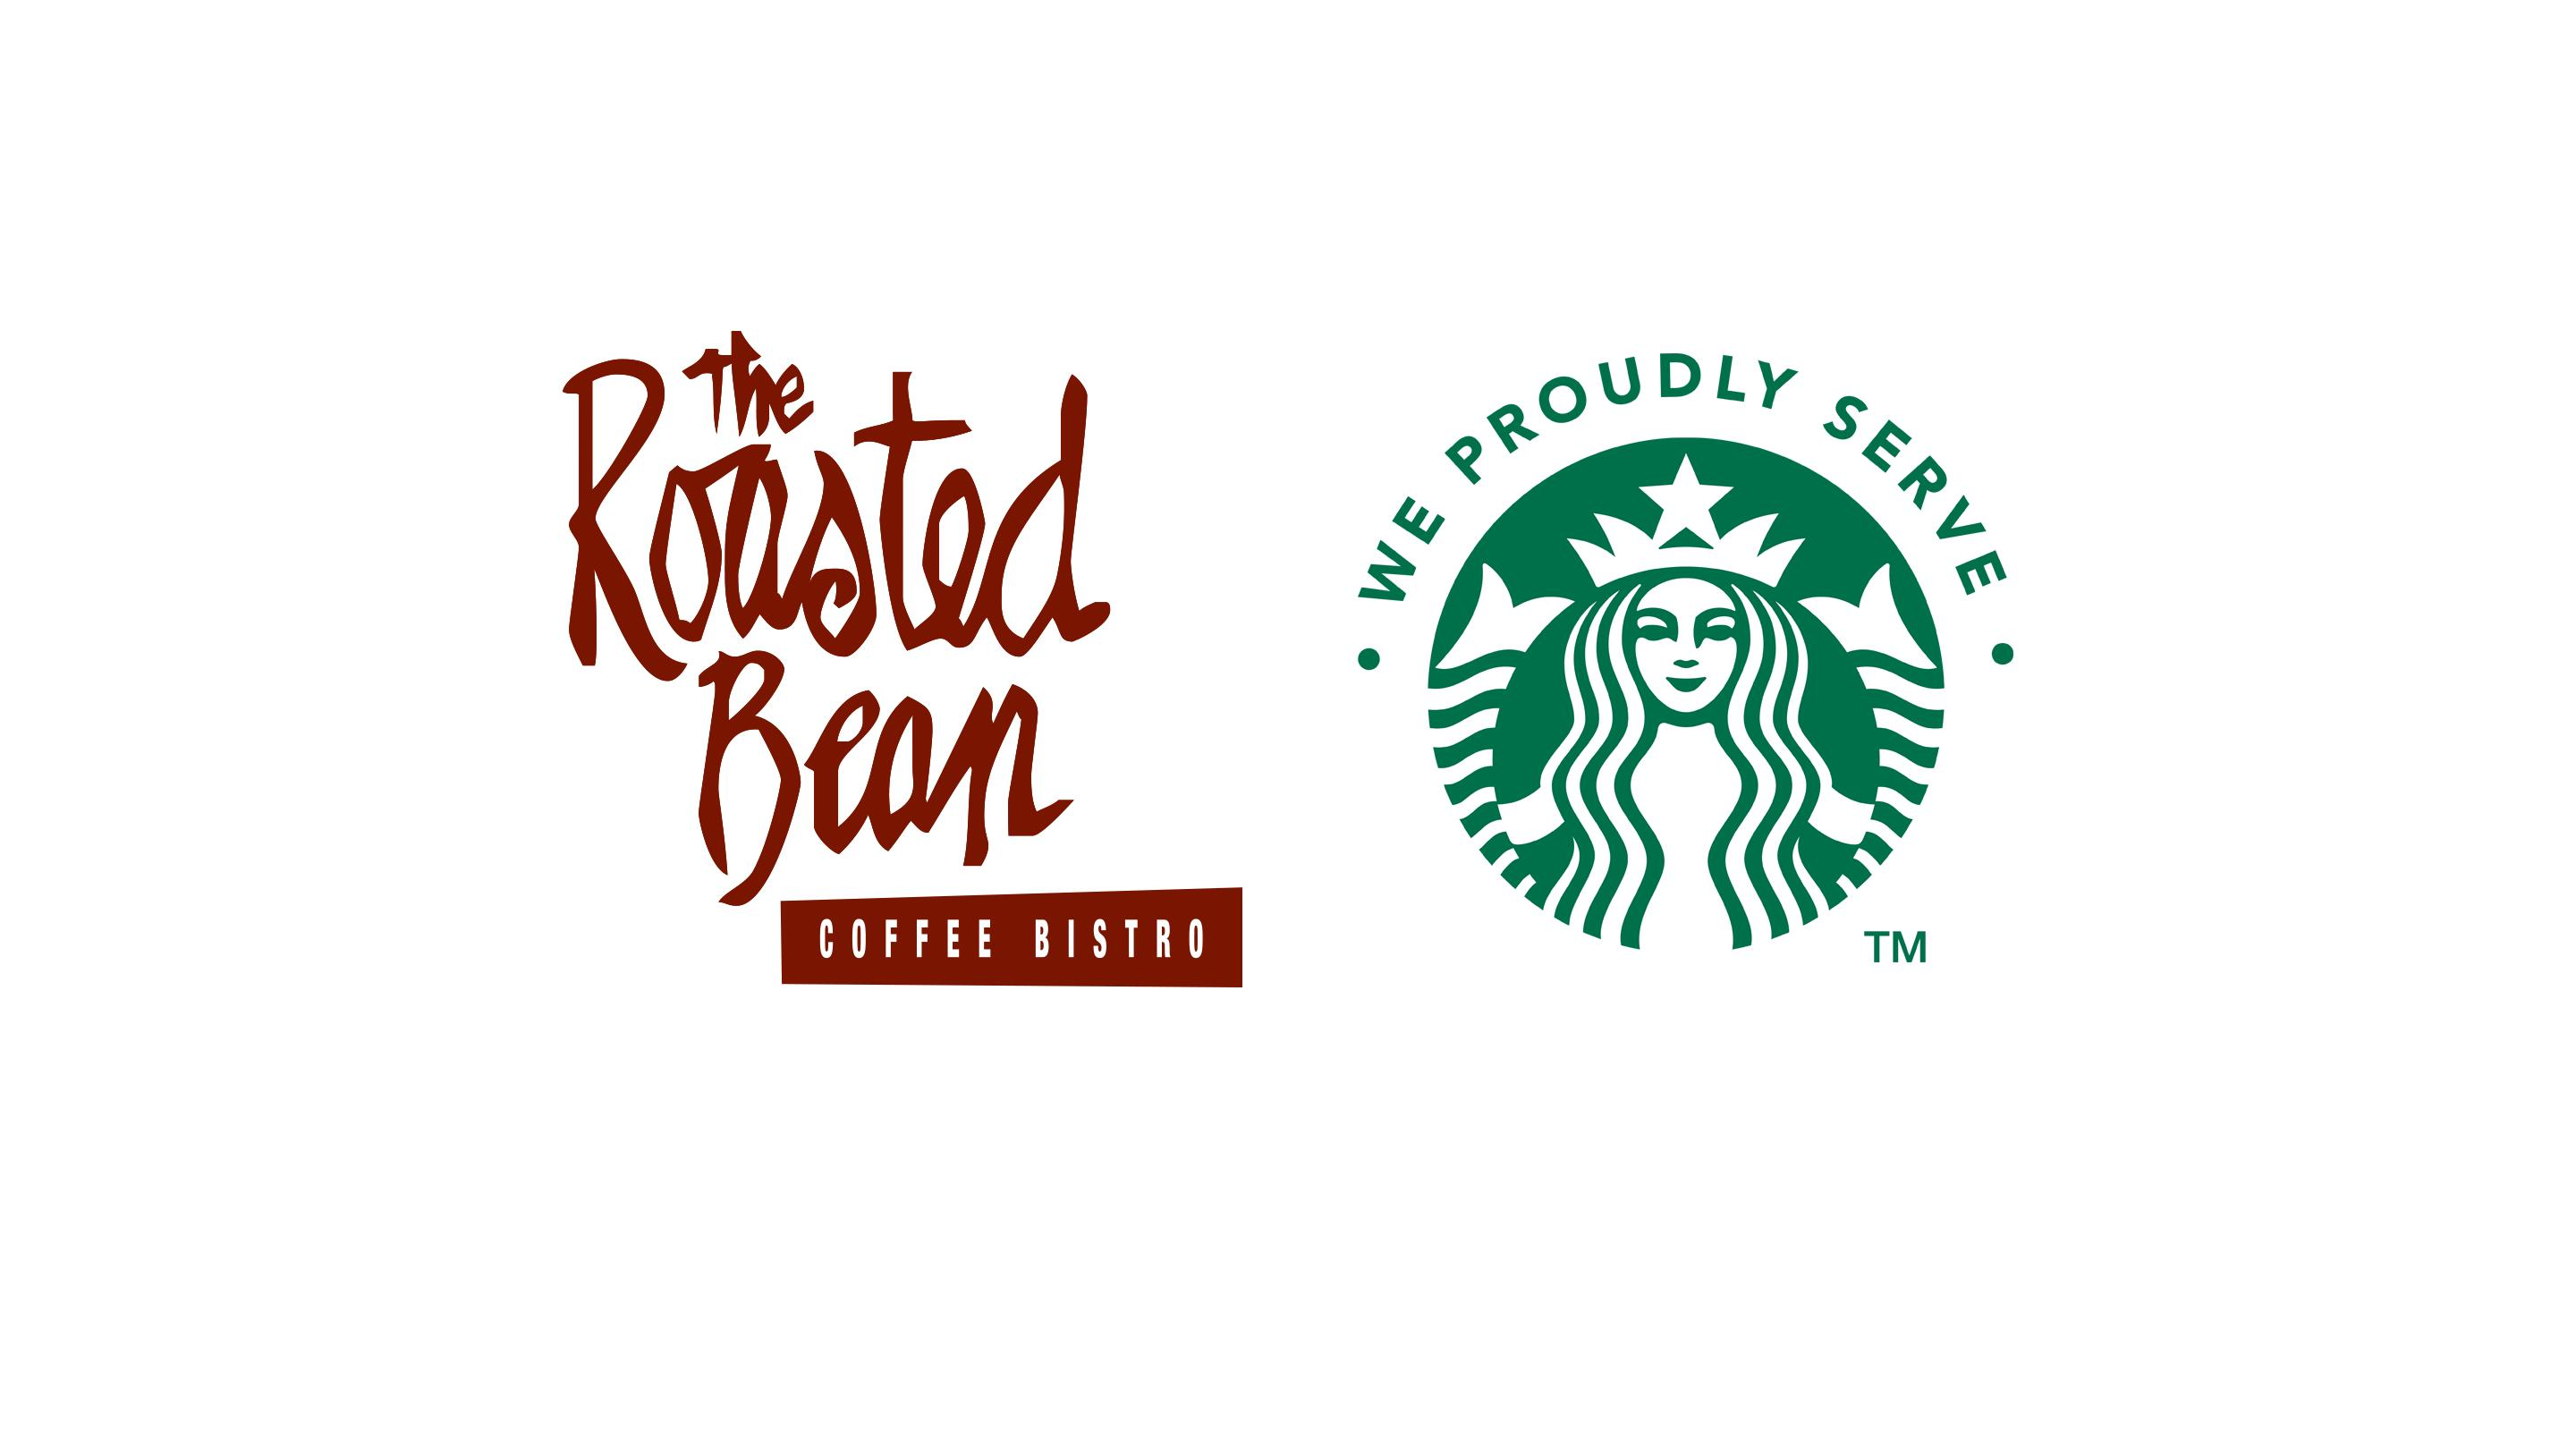 We proudly serve Starbucks at The Roasted Bean.